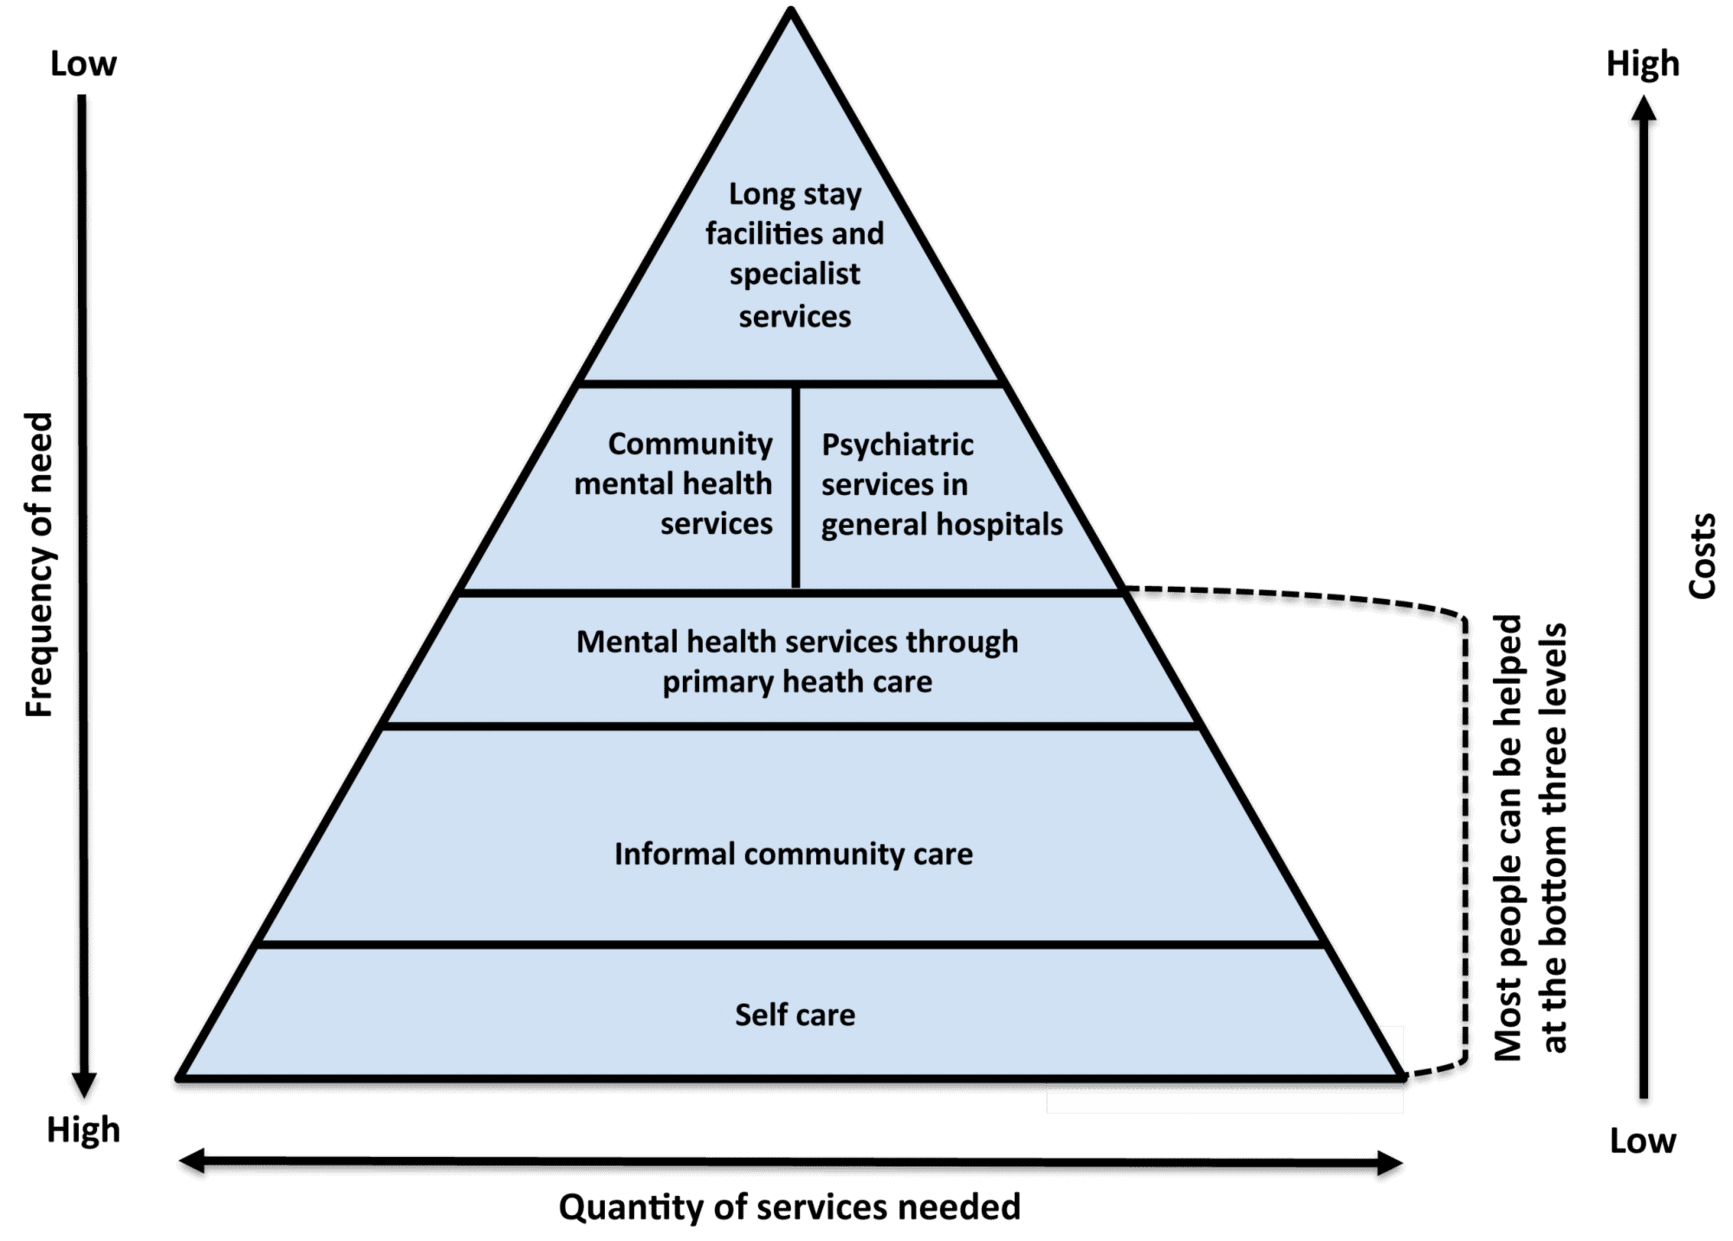 The WHO Optimal Mix of Mental Health Services